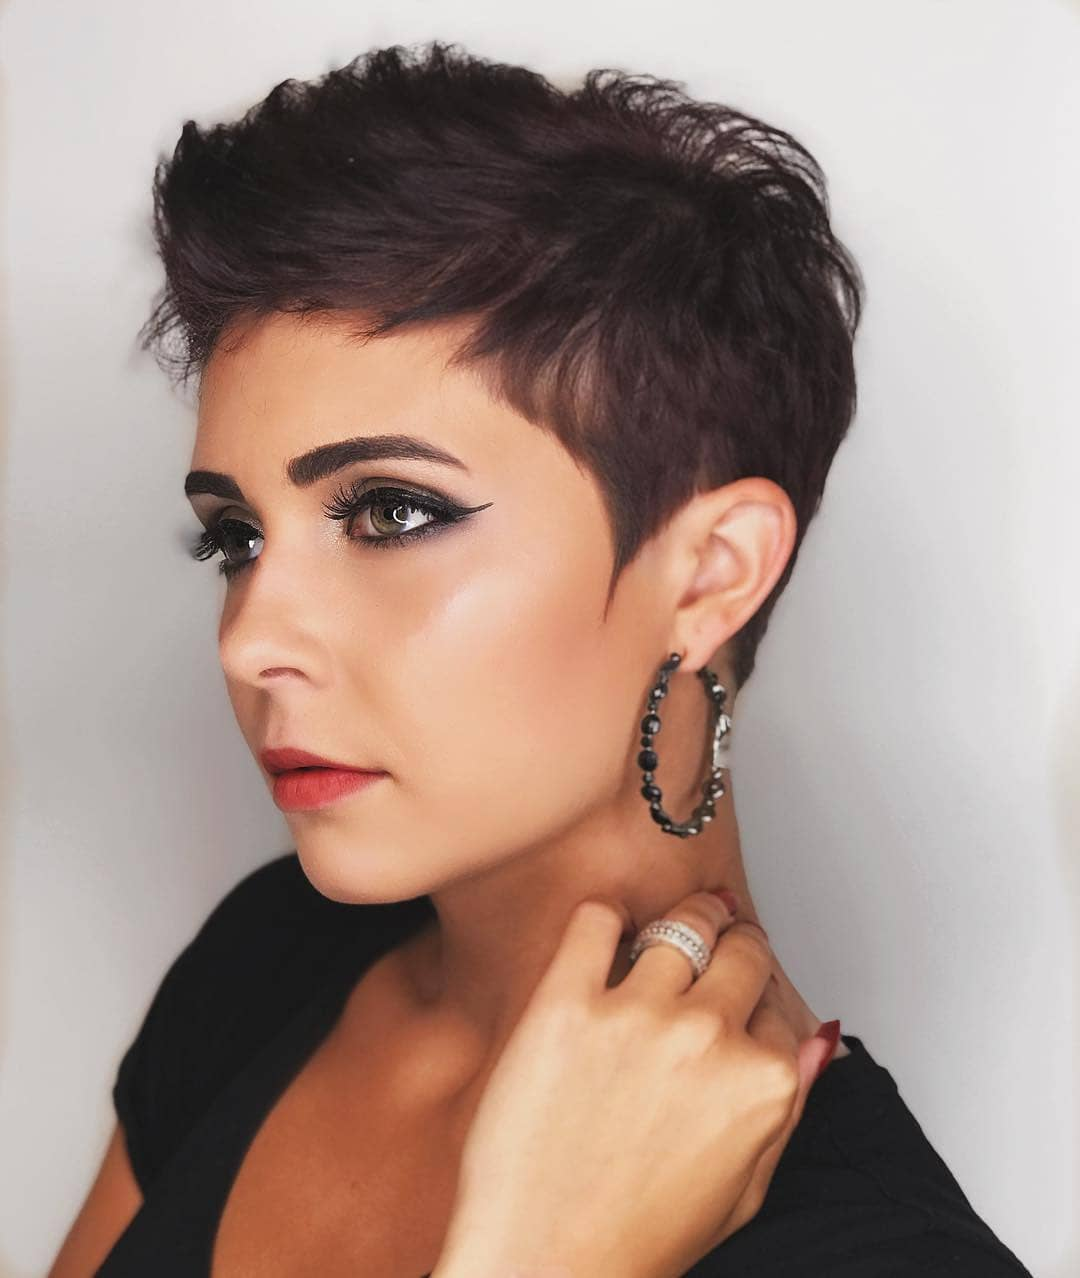 23 Flattering Short Hairstyles For Round Faces Stylesrant